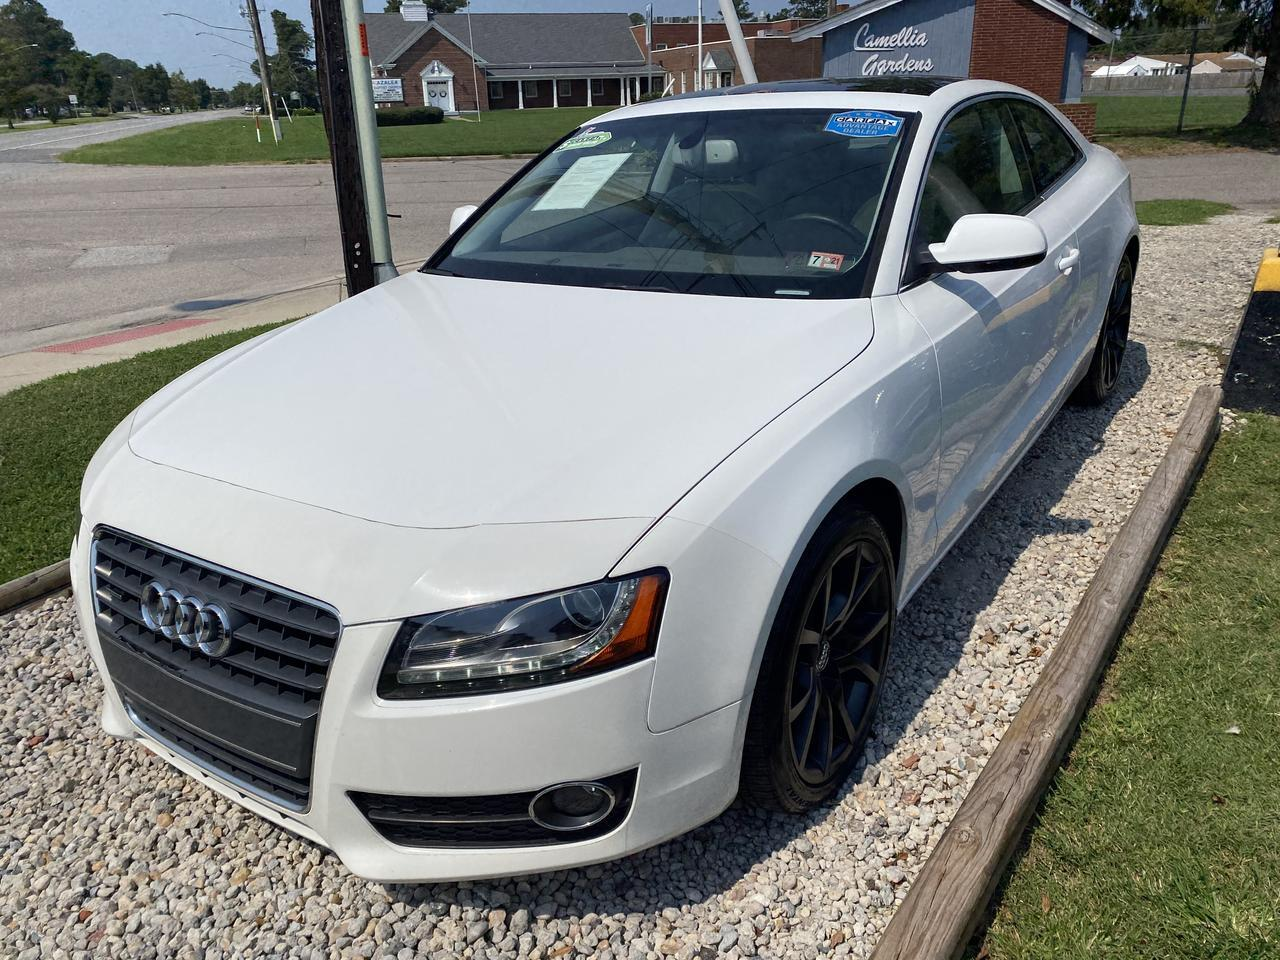 2012 AUDI A5 2.0T QUATTRO PREMIUM +, WARRANTY, LEATHER, SUNROOF, NAV, HEATED SEATS, BLUETOOTH, 1 OWNER, CLEAN! Norfolk VA